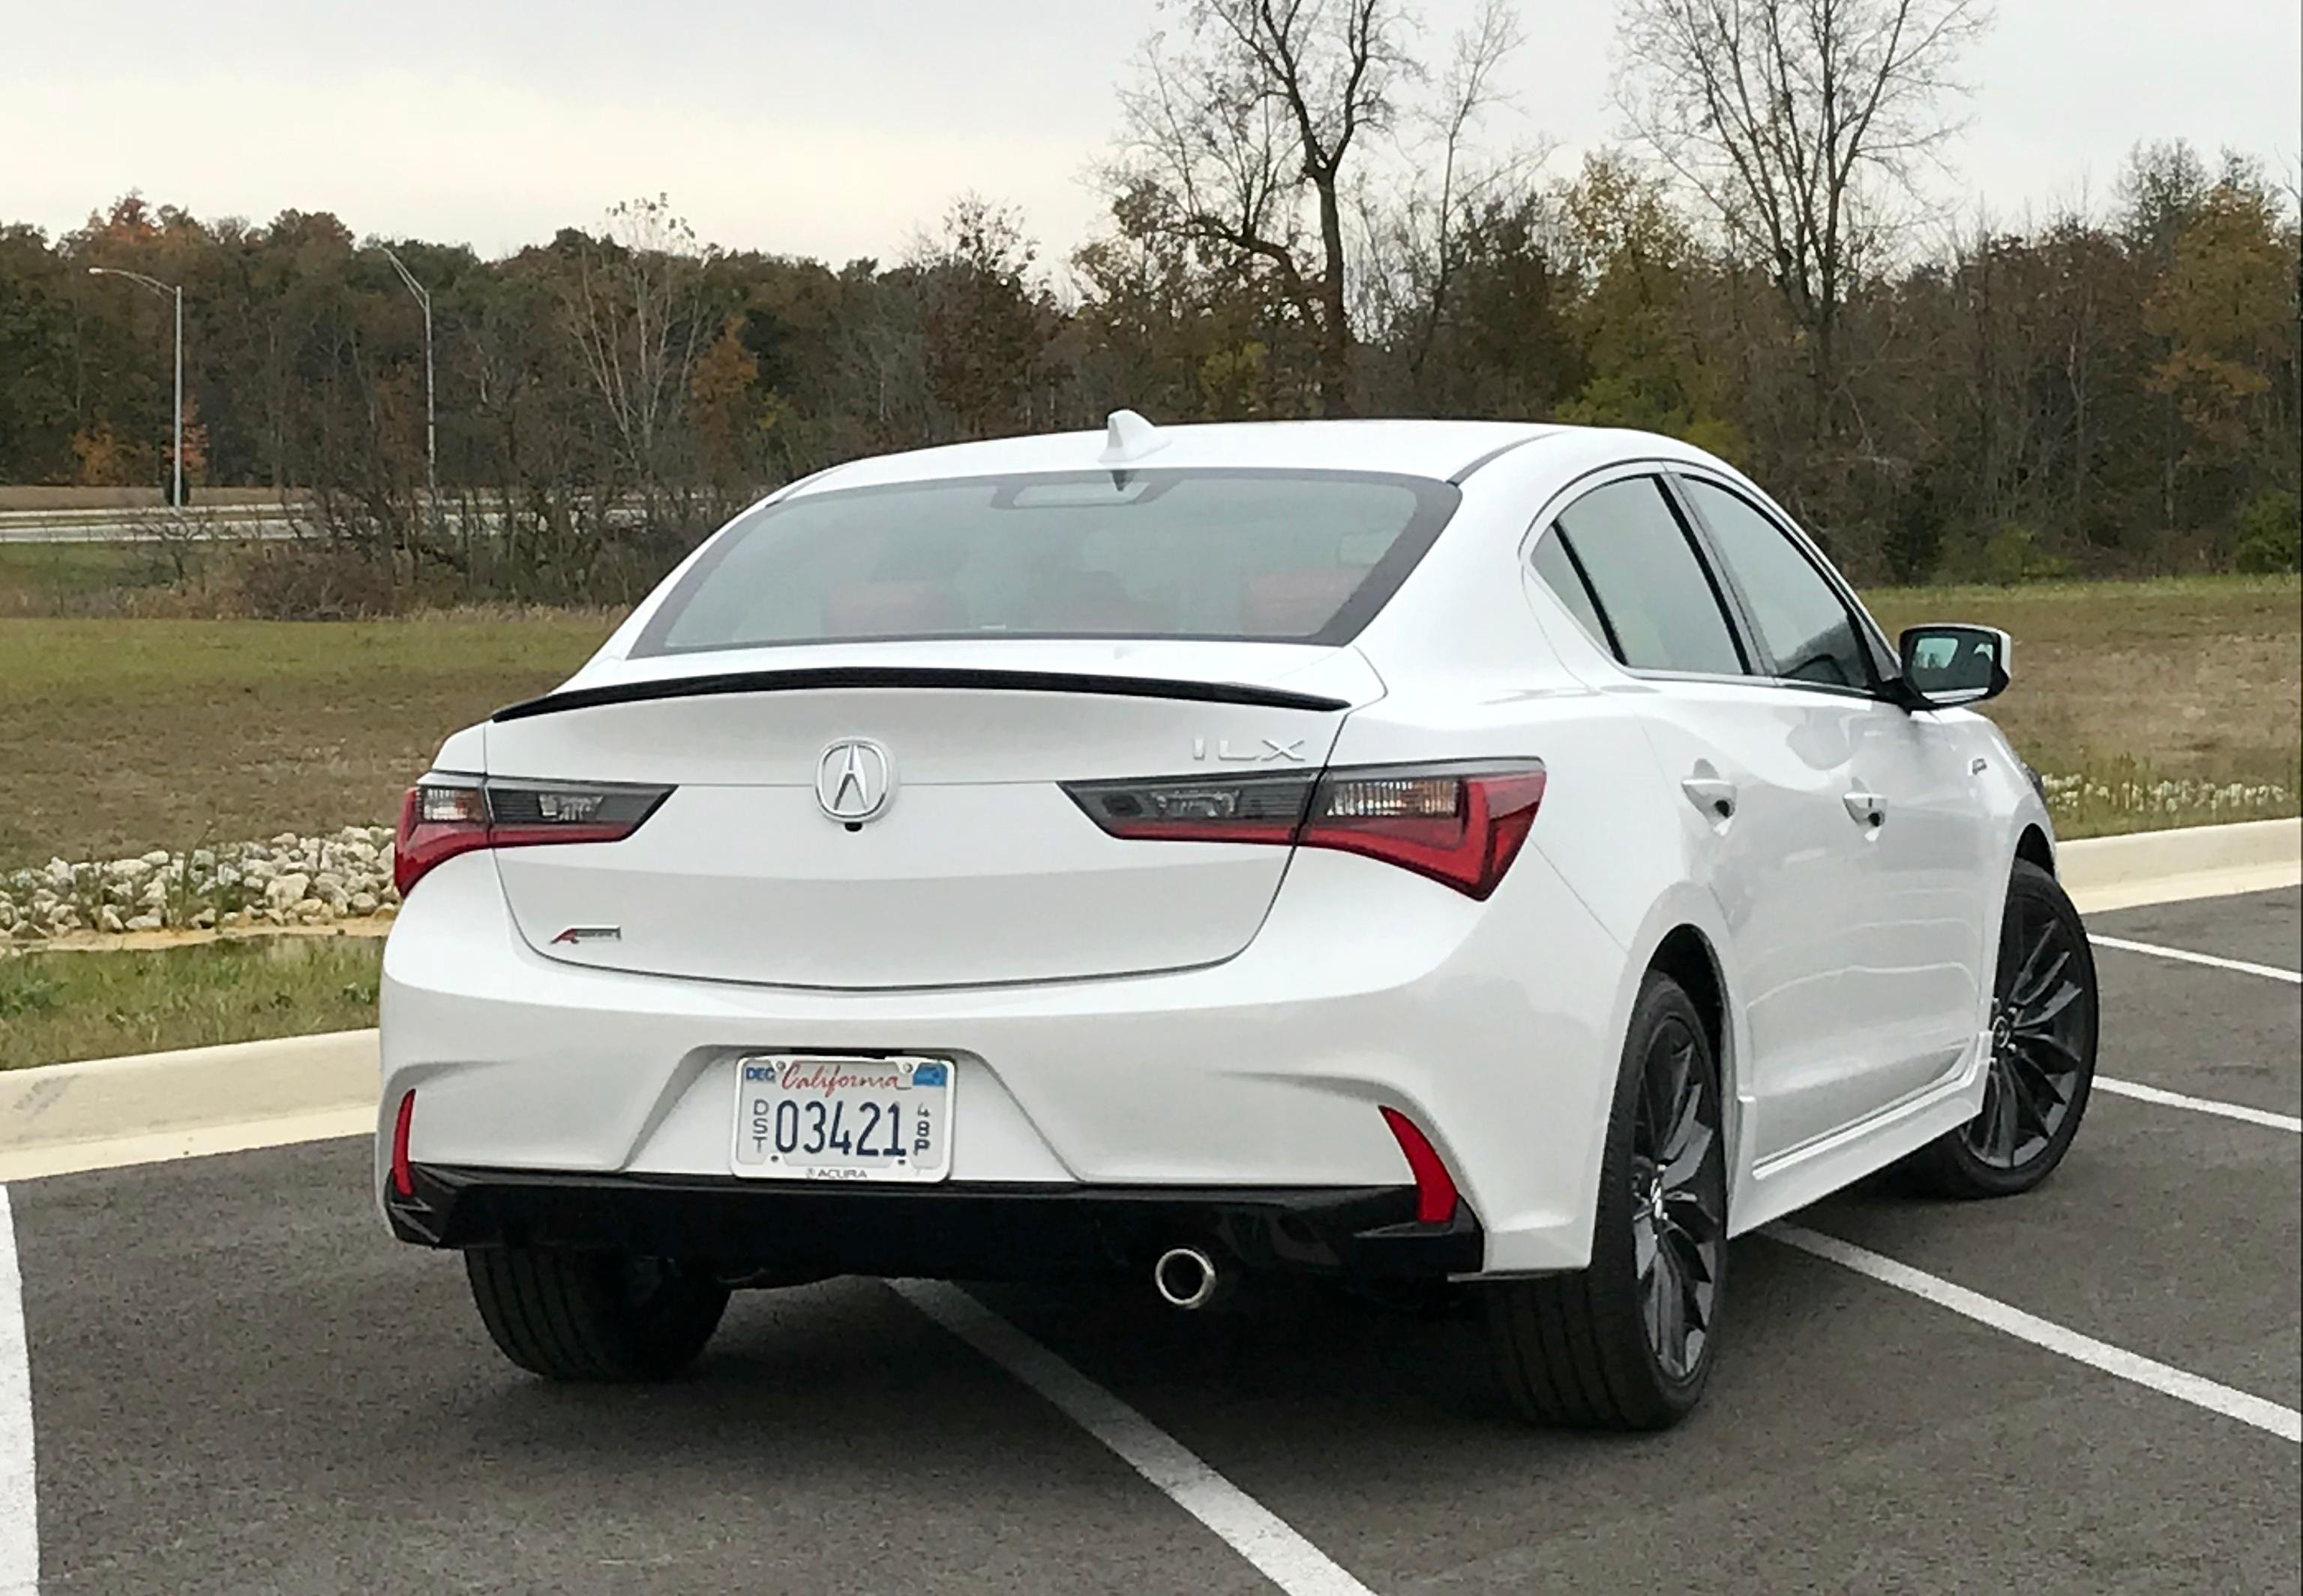 2019 Acura Ilx Entry Lux Competitor Gets Refresh Adds Standard Safety First Lo